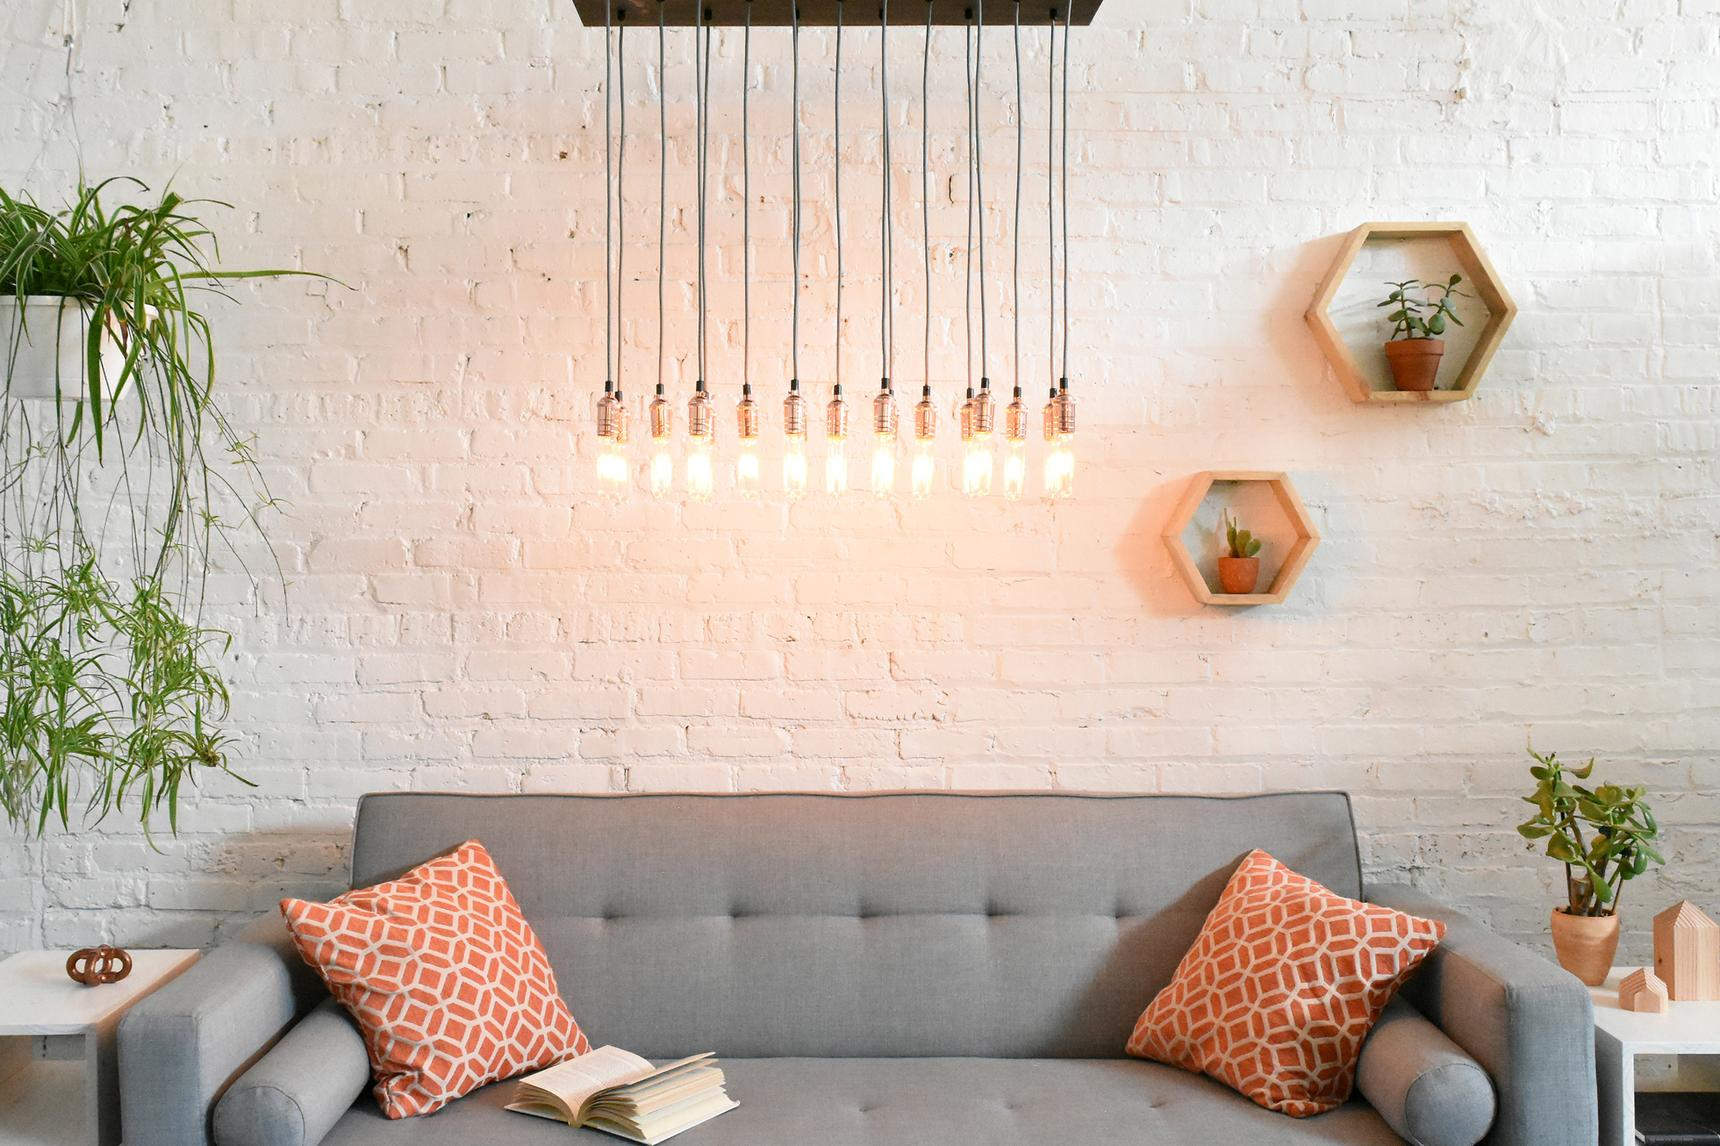 Wood chandelier with Edison bulbs over couch in living room